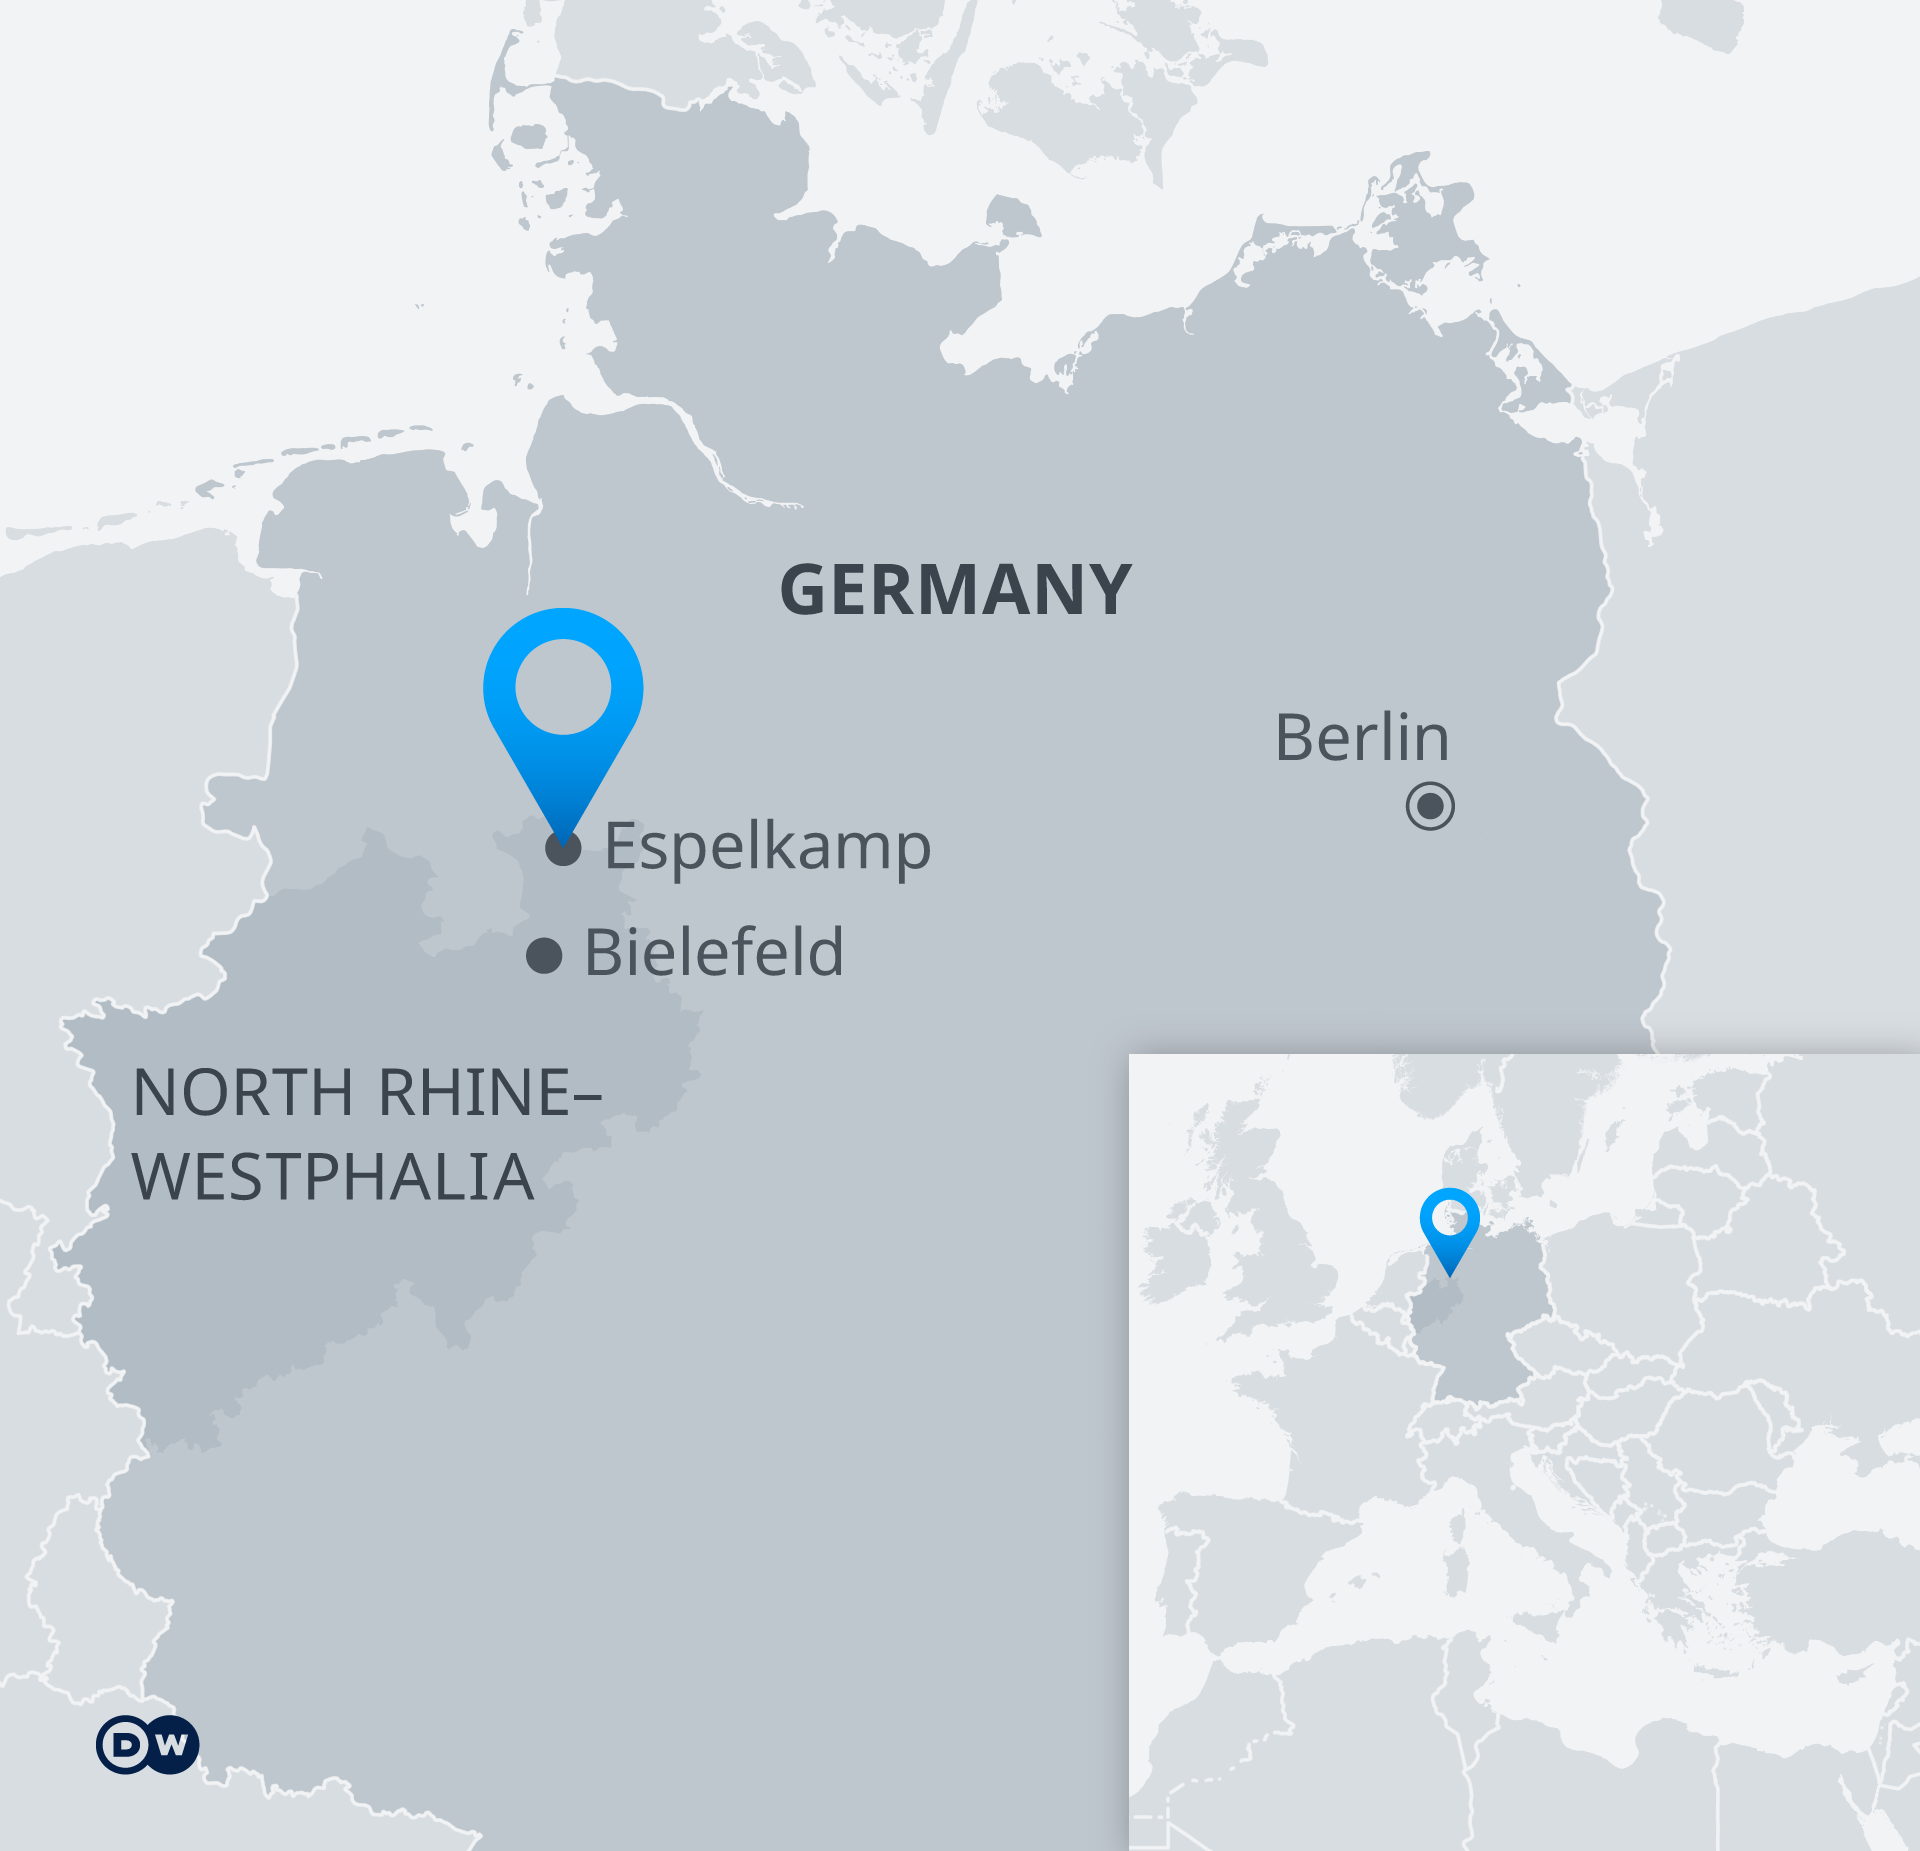 Map showing the location of the small town of Espelkamp